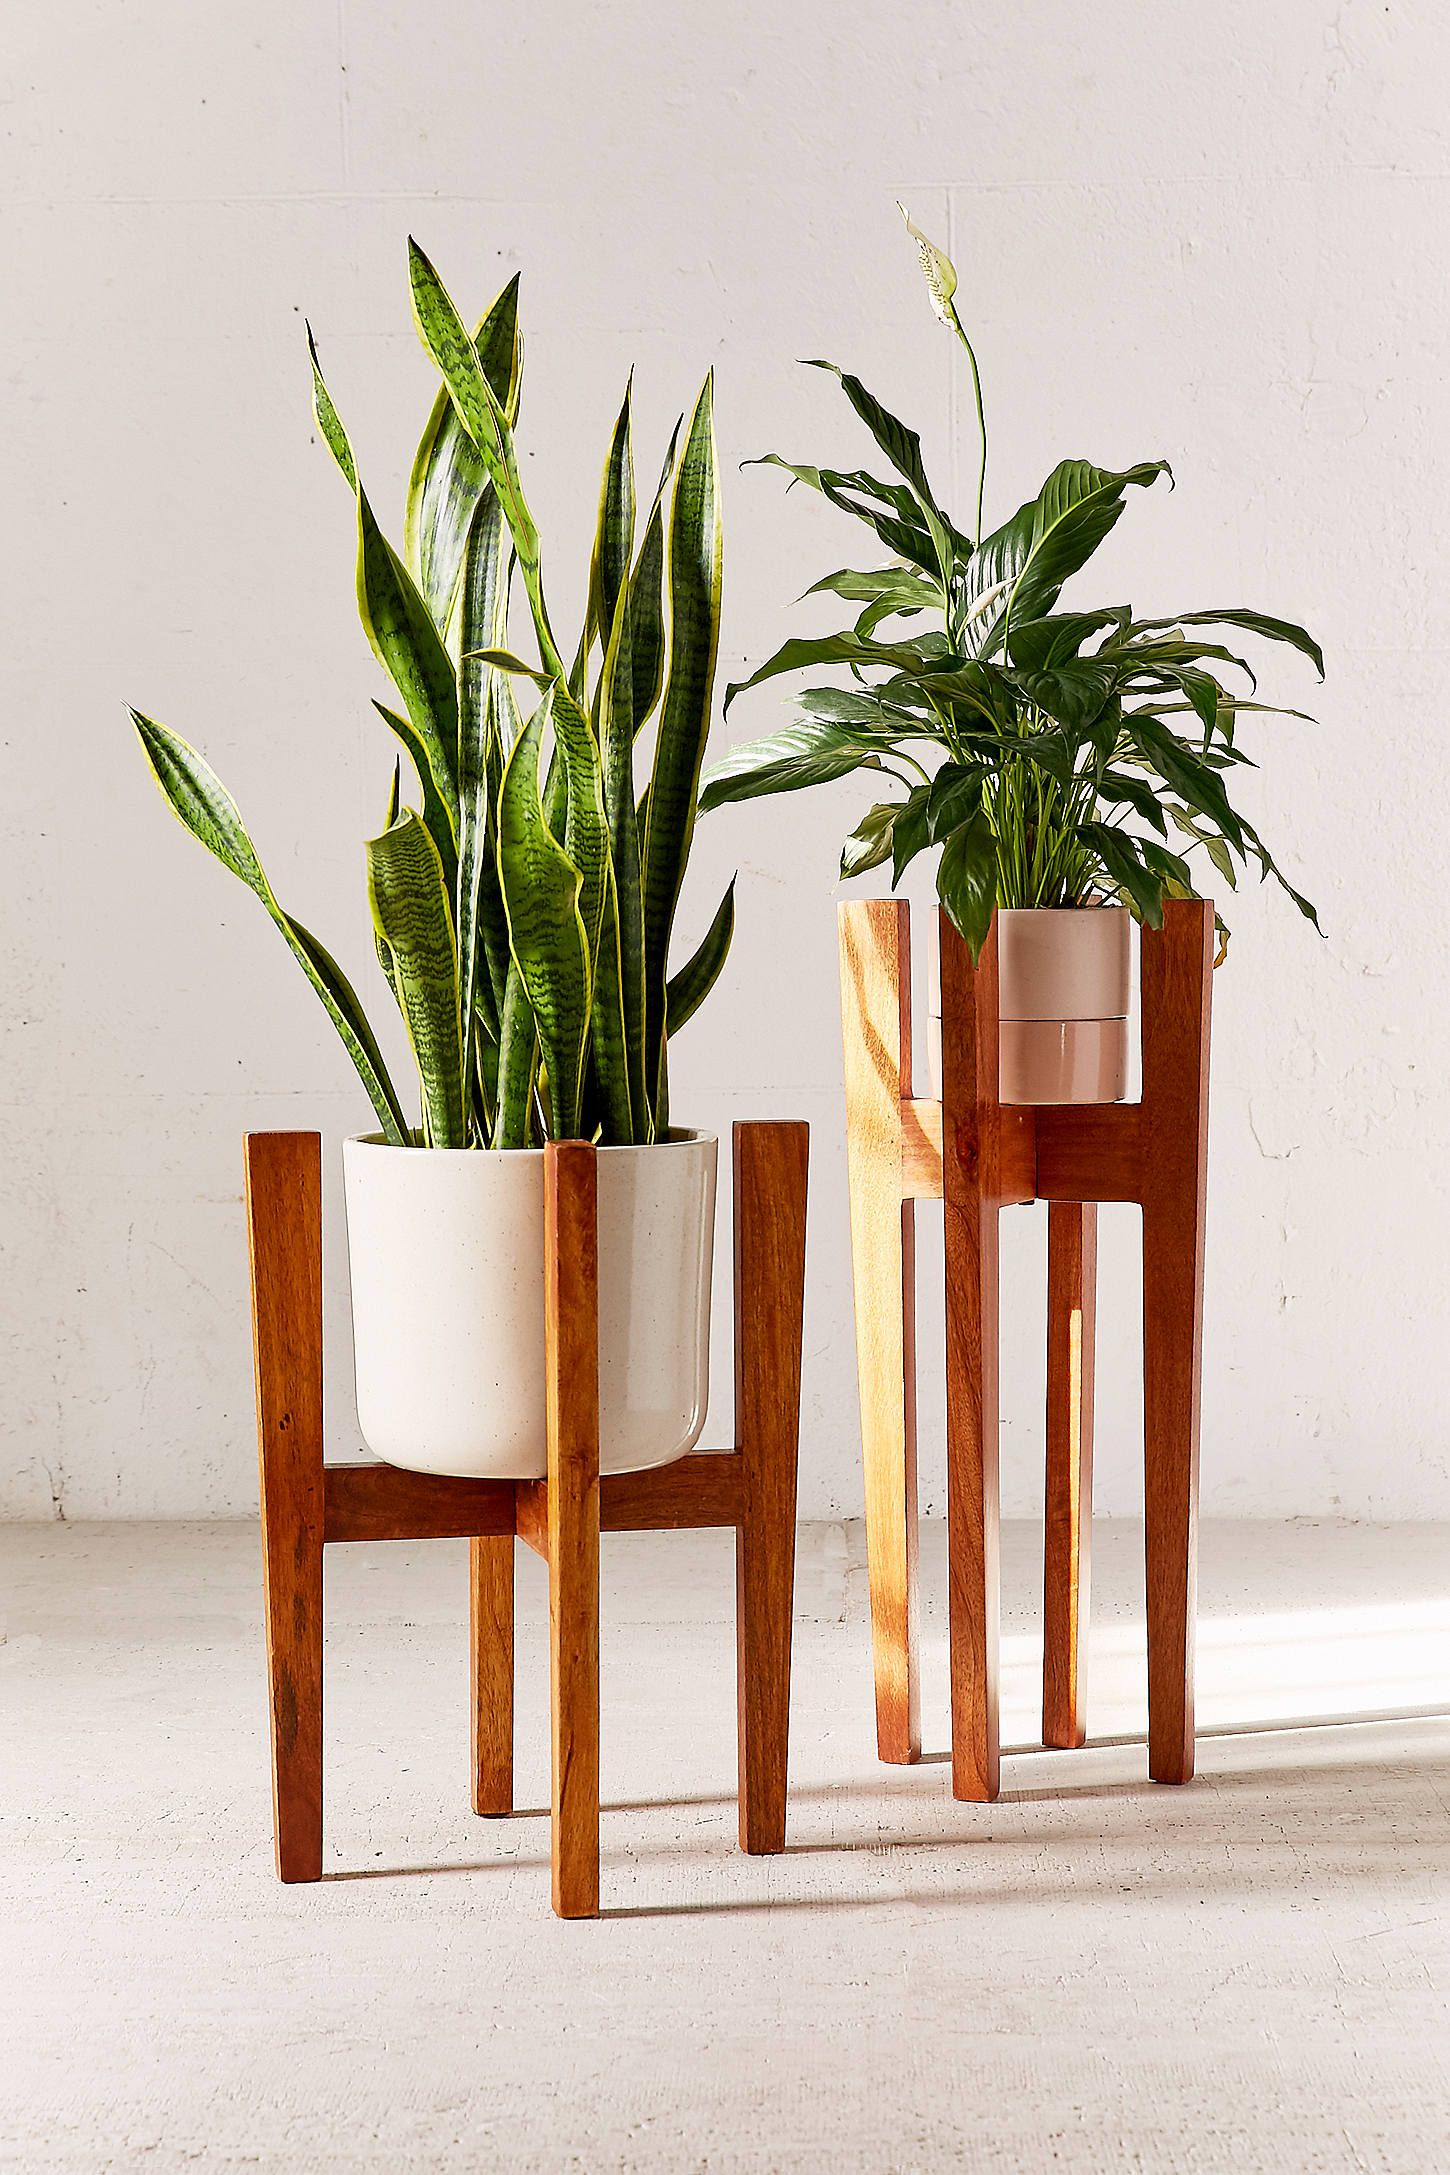 Knock Down Plant Stand (With images) | Plant stand, Plant ... on Hanging Plants Stand Design  id=81027